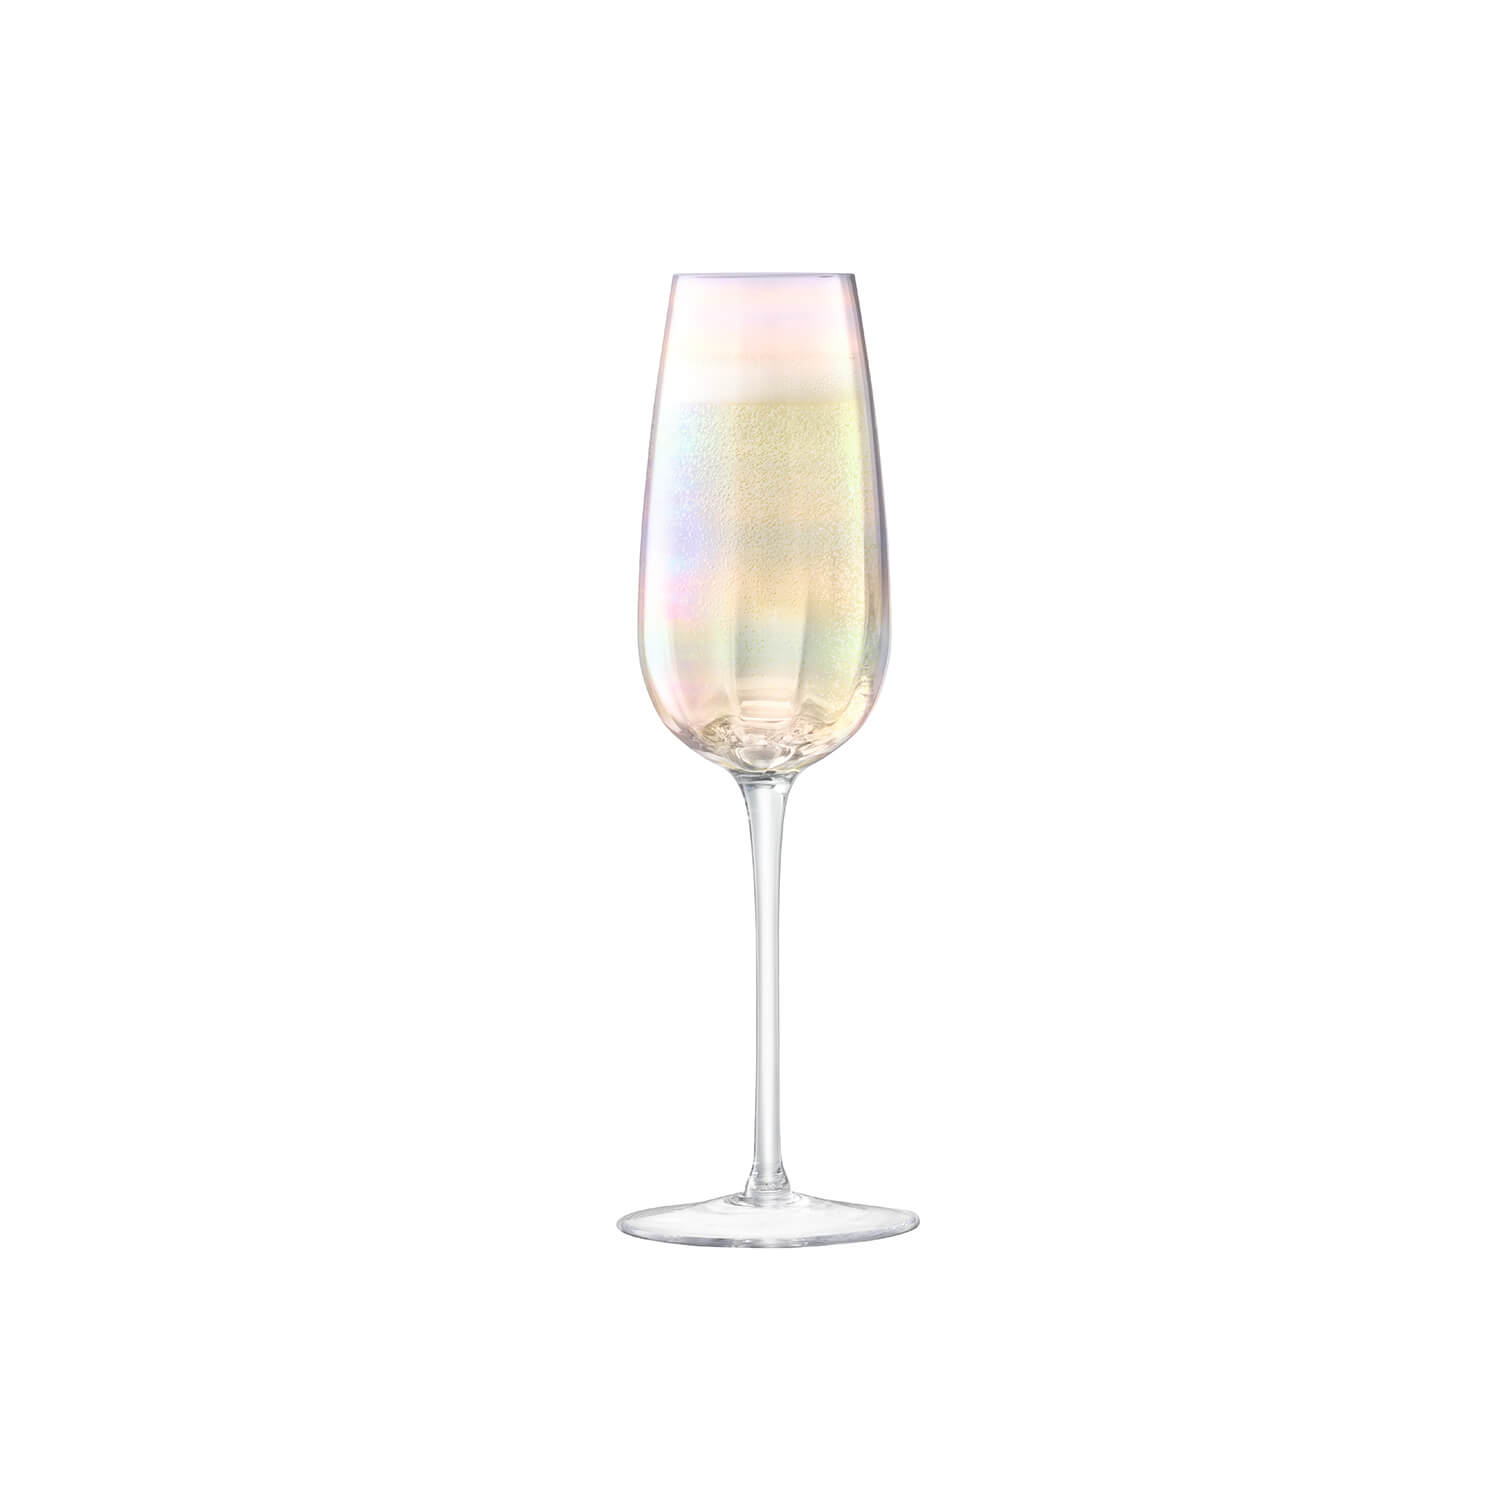 Image of LSA Pearl Champagne Flute, Set of 4